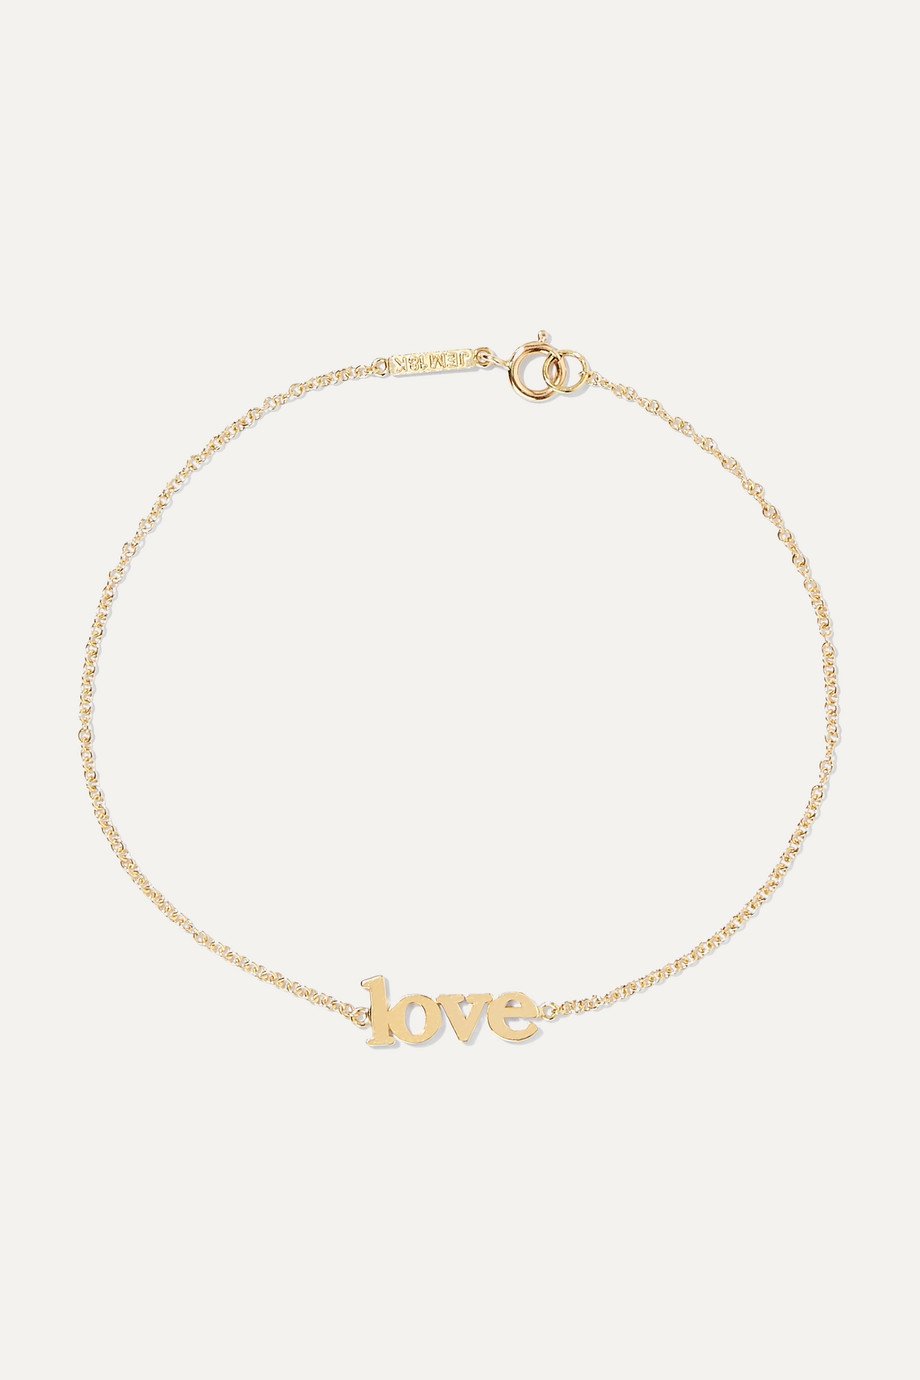 Jennifer Meyer Love 18-karat gold bracelet